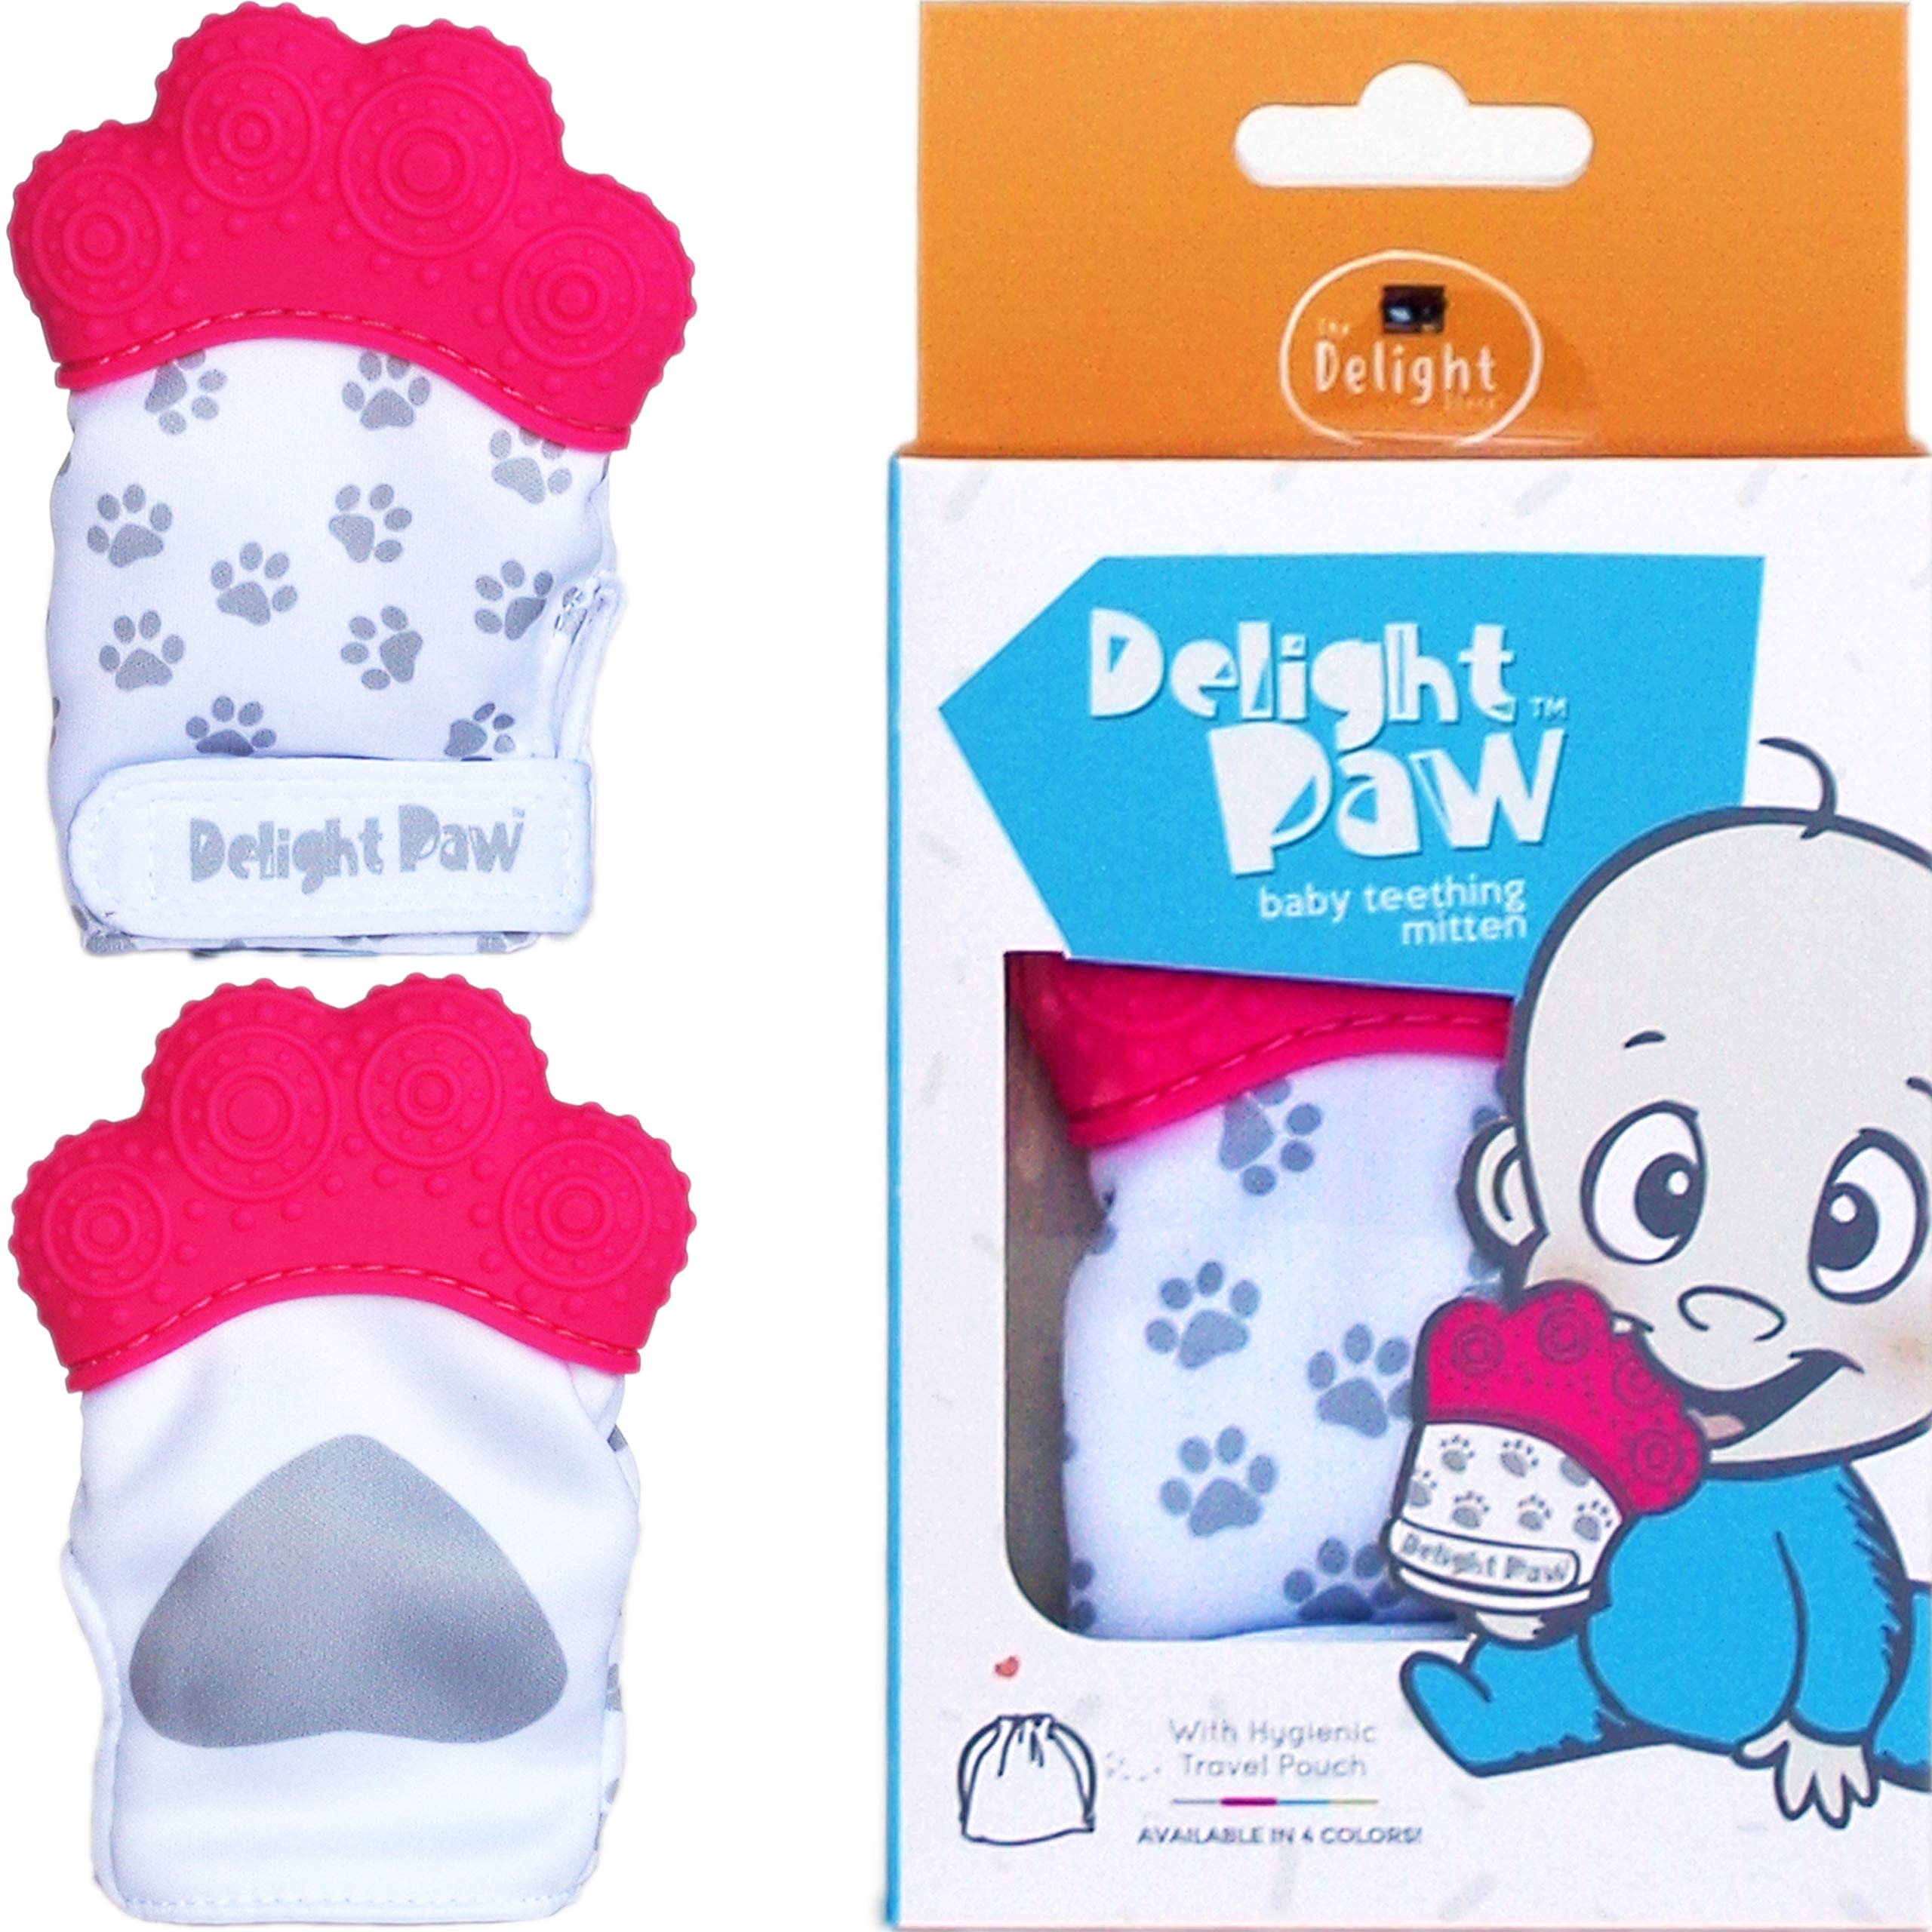 Delight Paw Baby Teething Mitten Mom Designed for Self Soothing Pain Relief | with Hygienic Travel Bag | Mittens BPA Free | Prevents Scratches | Baby Boy or Baby Girl | 0-6 Months | Precious Pink